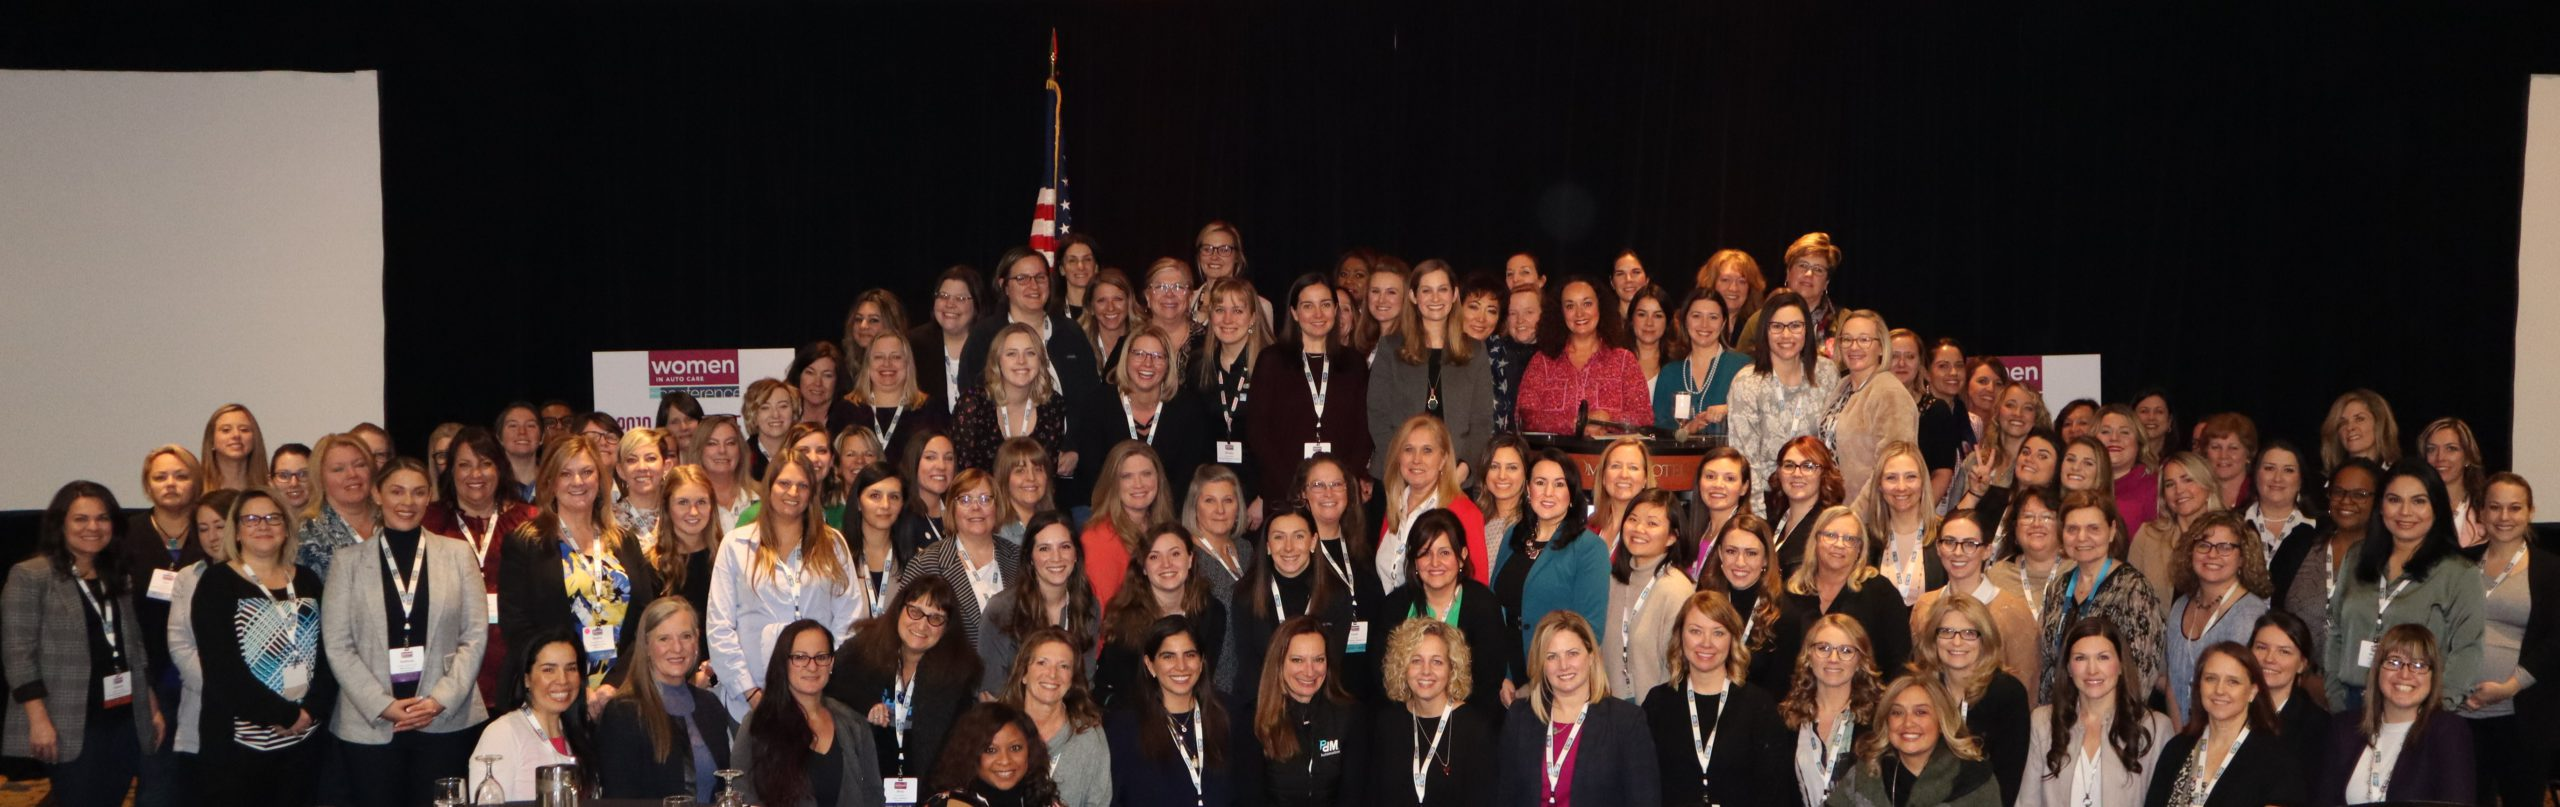 2020 Women in Auto Care Annual Leadership Conference attendees (photo supplied by Auto Care)